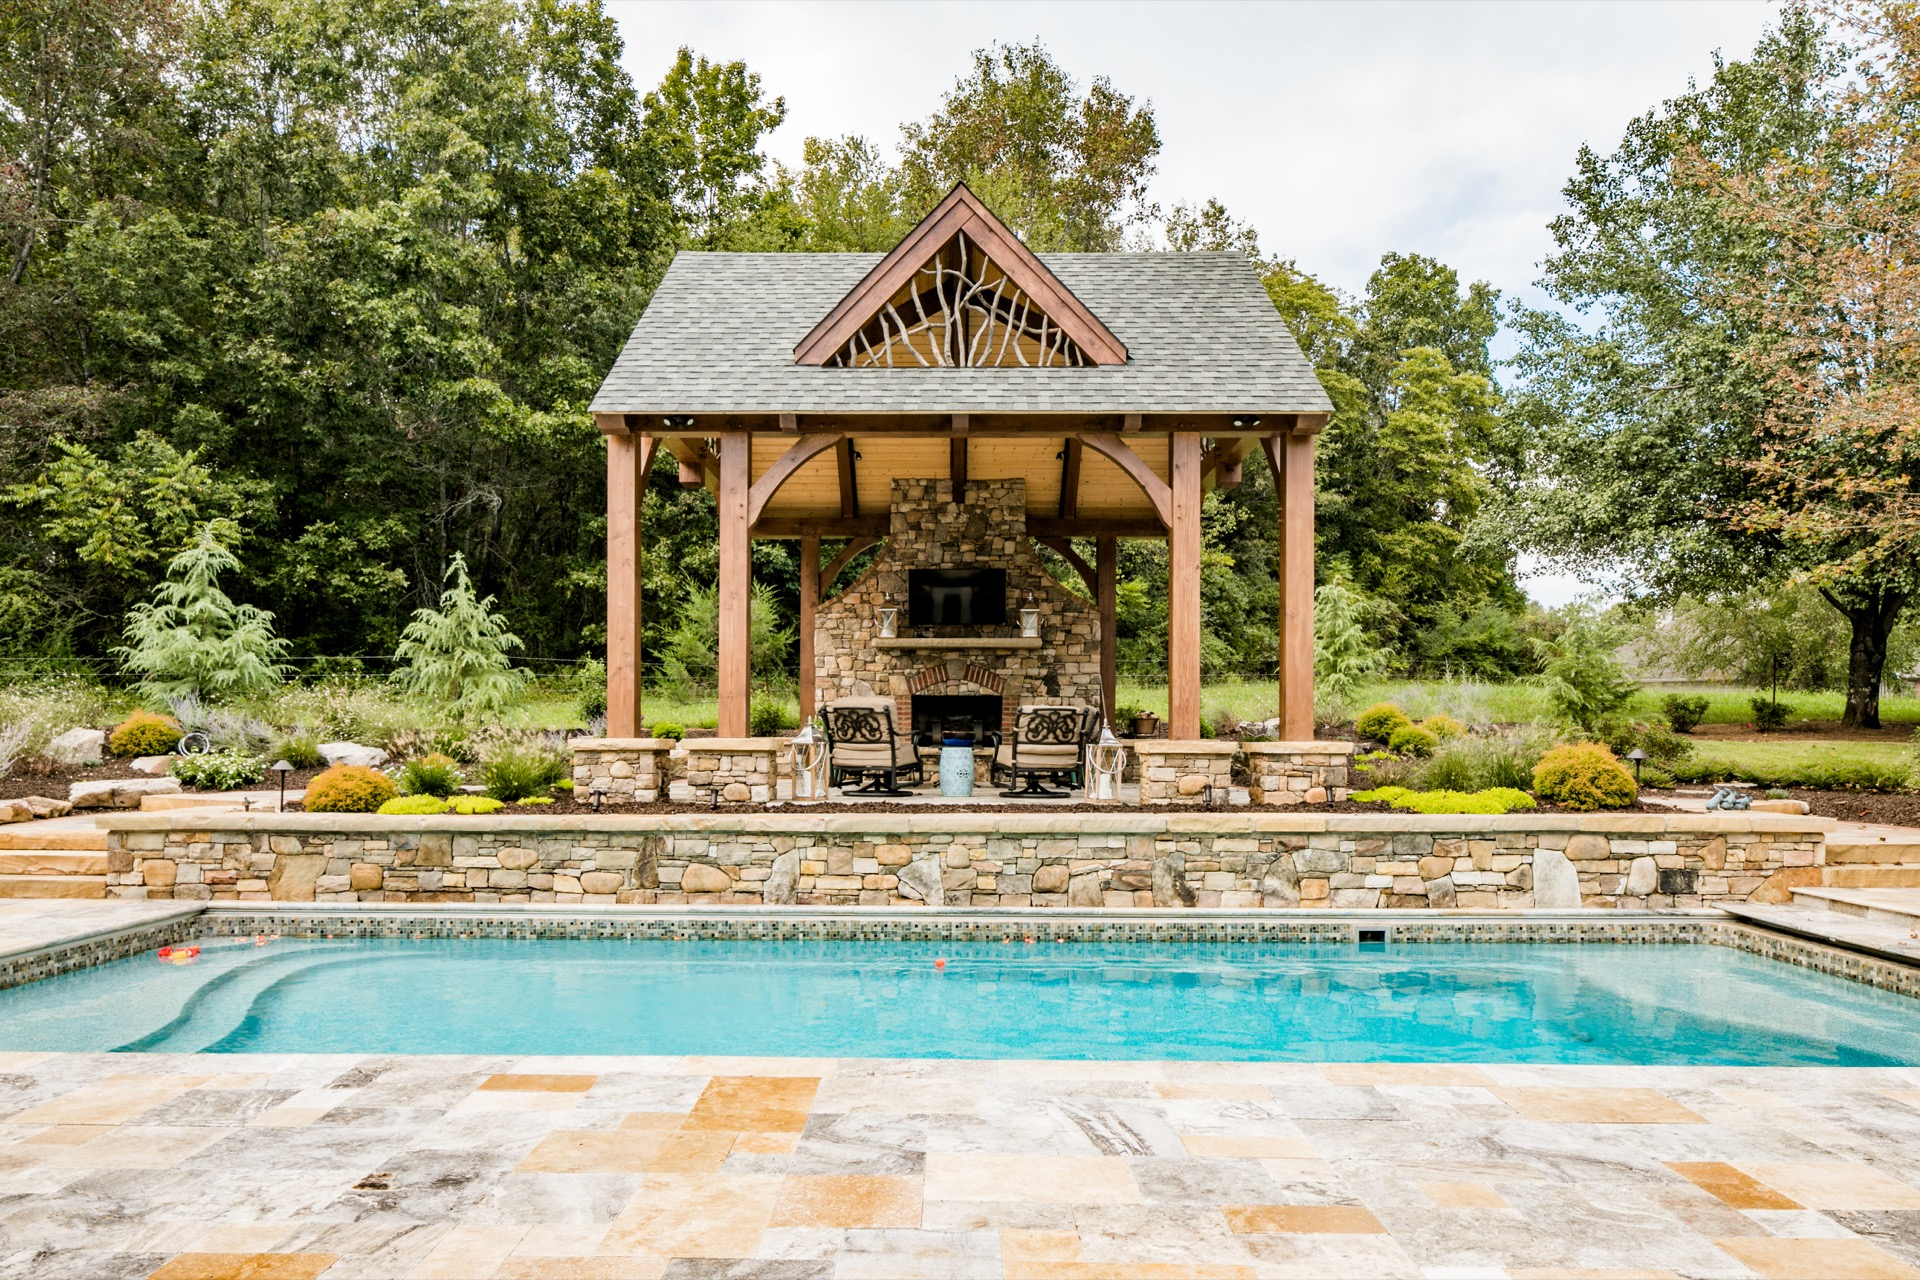 Our Nest Outdoor Living Plan by Natural Element Homes